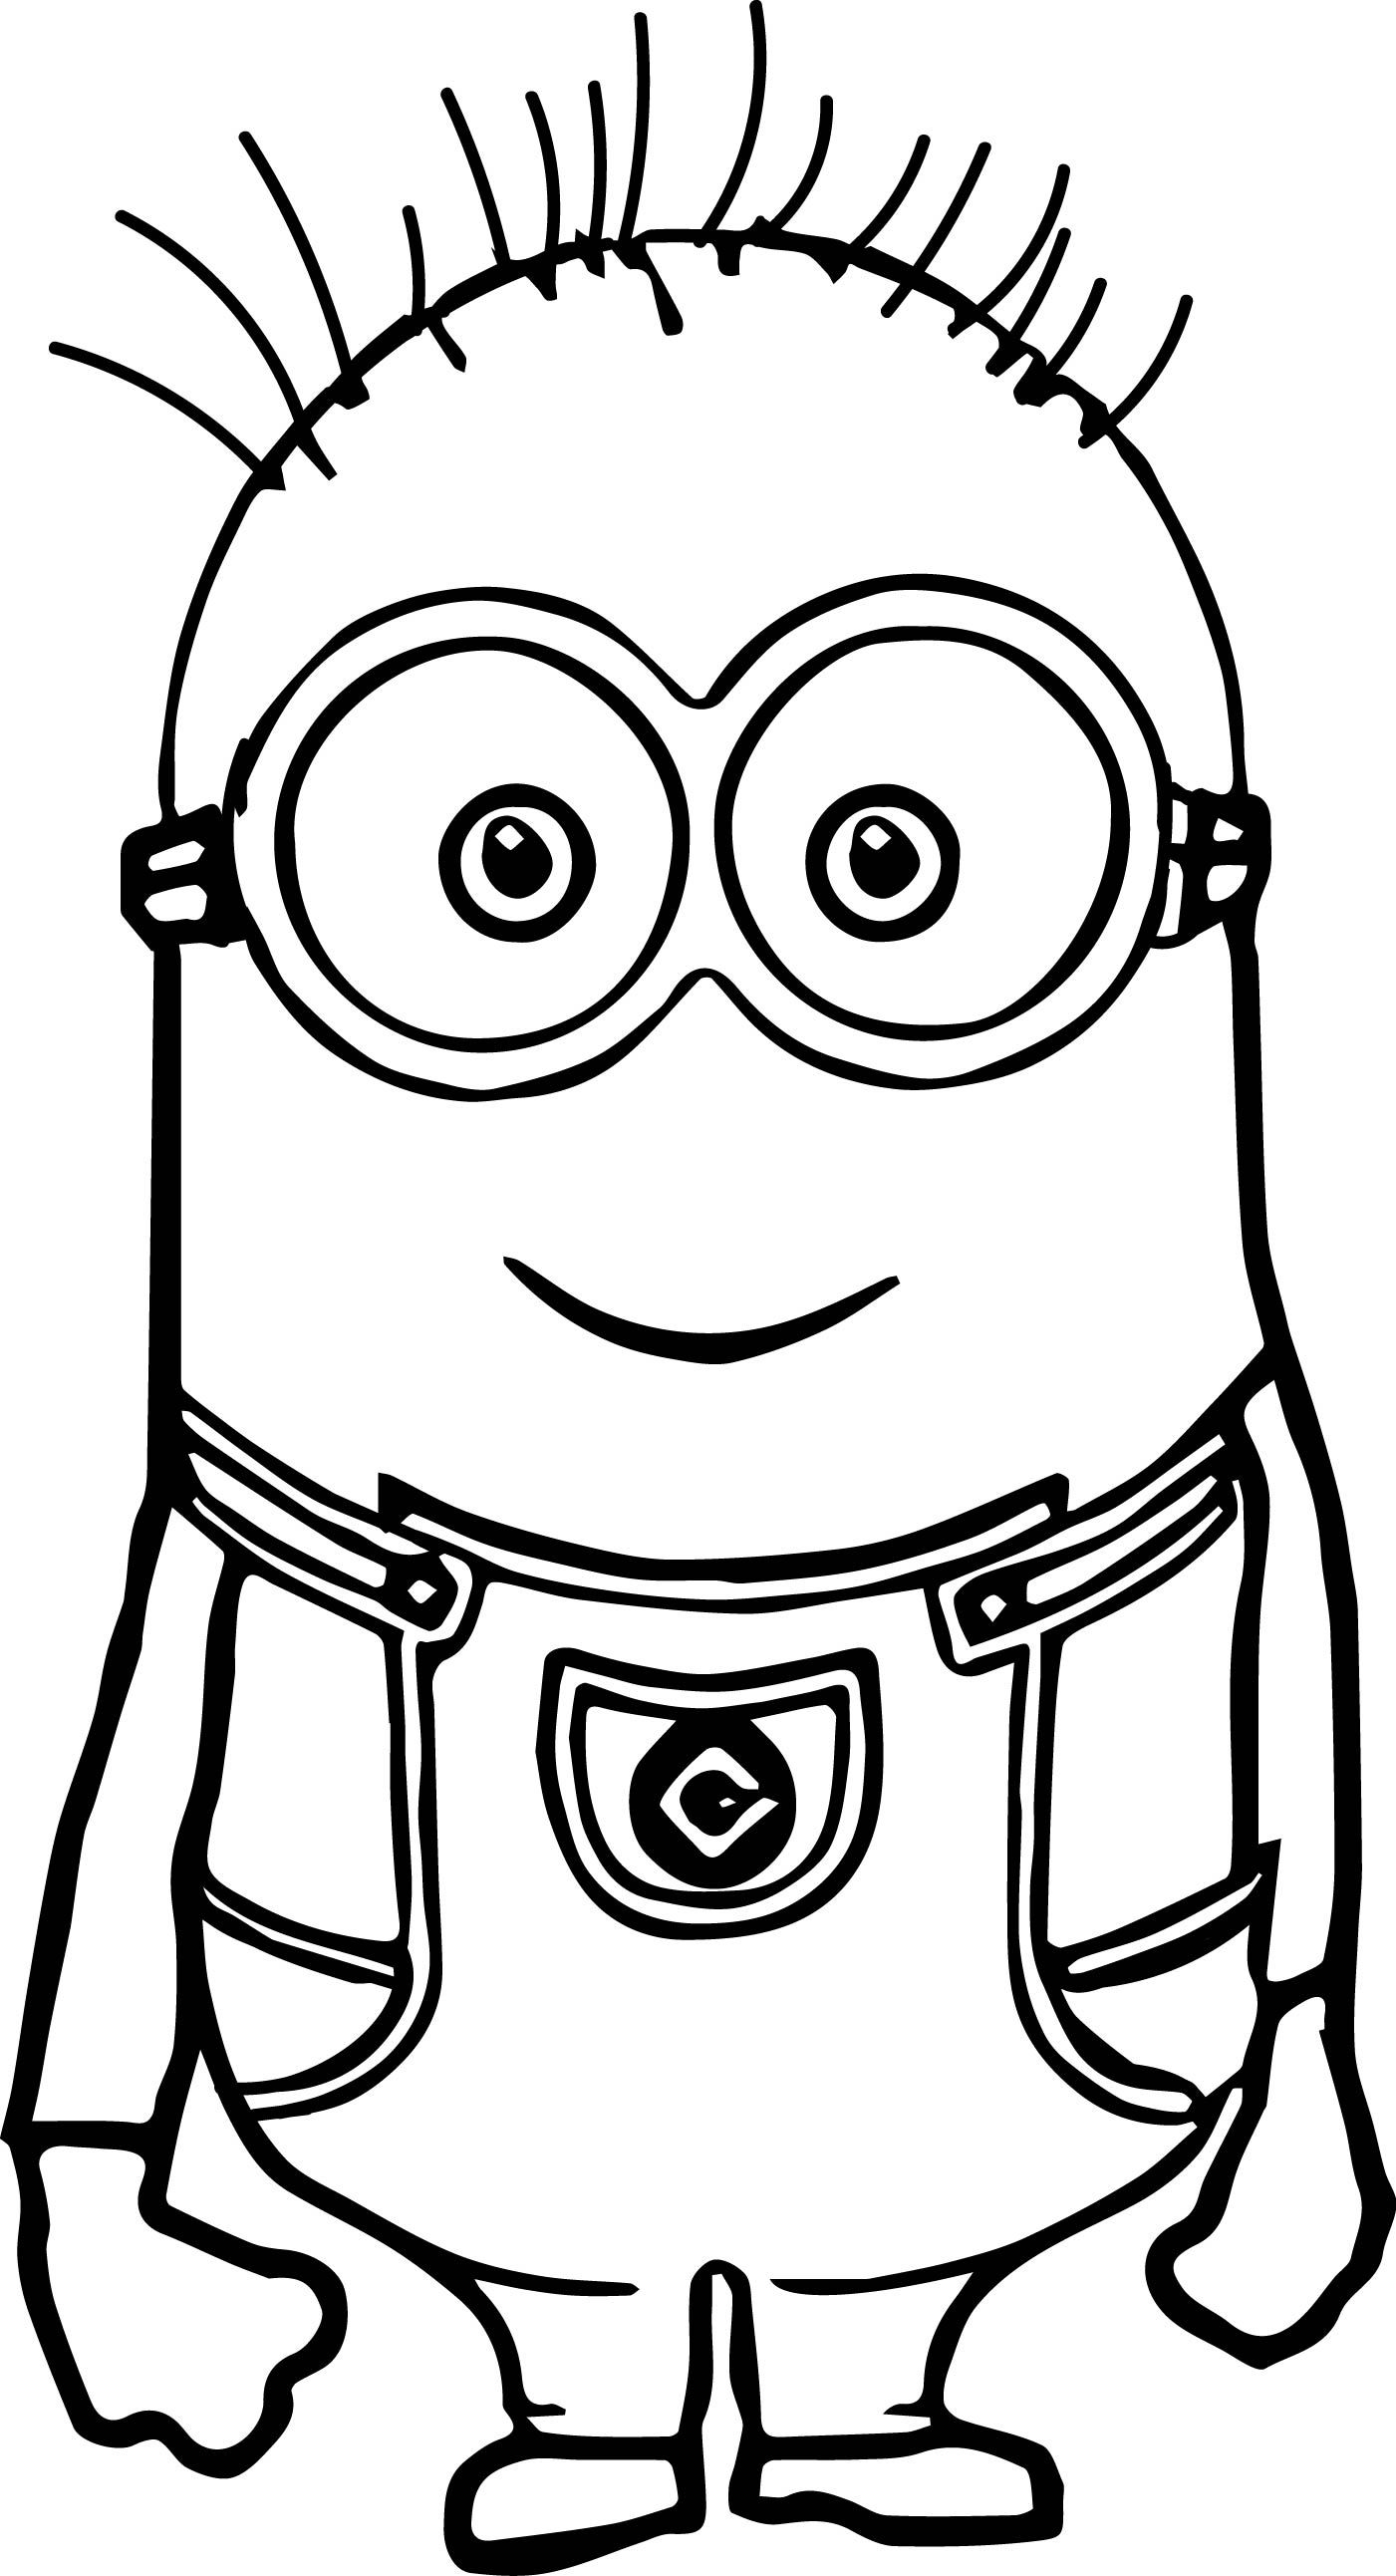 Cute Basic Minion Coloring Page | Wecoloringpage.com ...